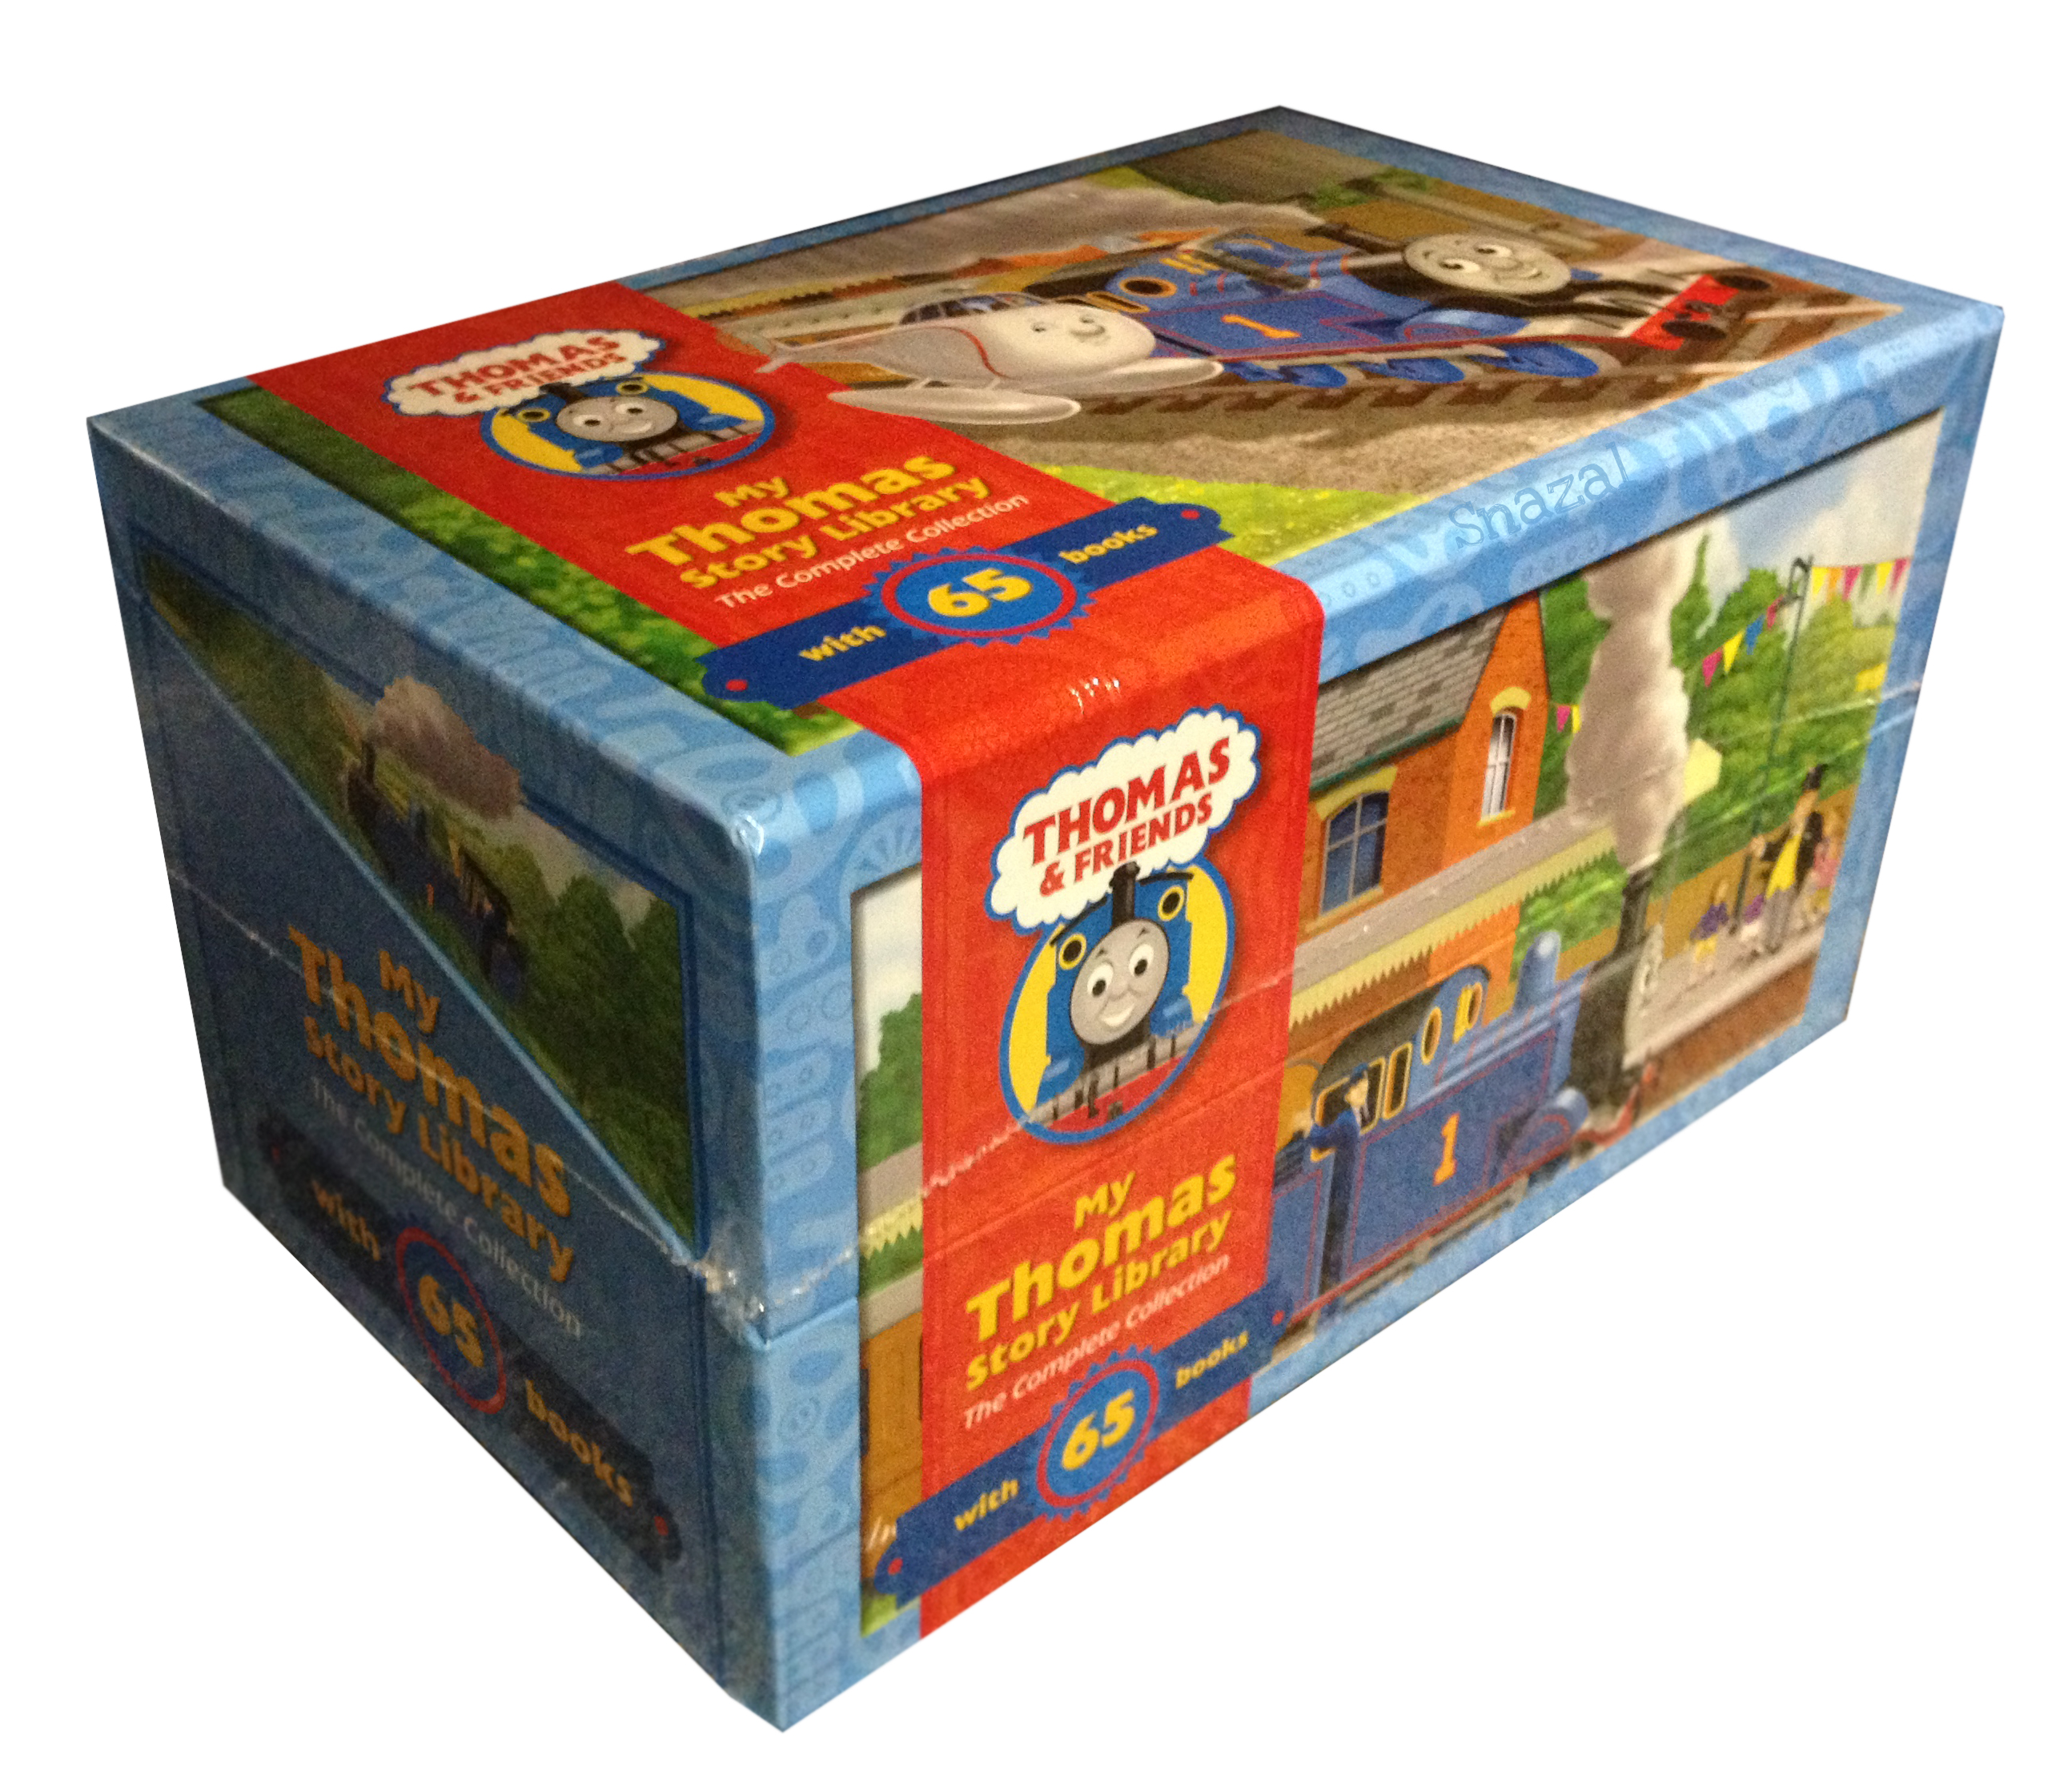 Details about thomas friends collection 65 books boxed gift set